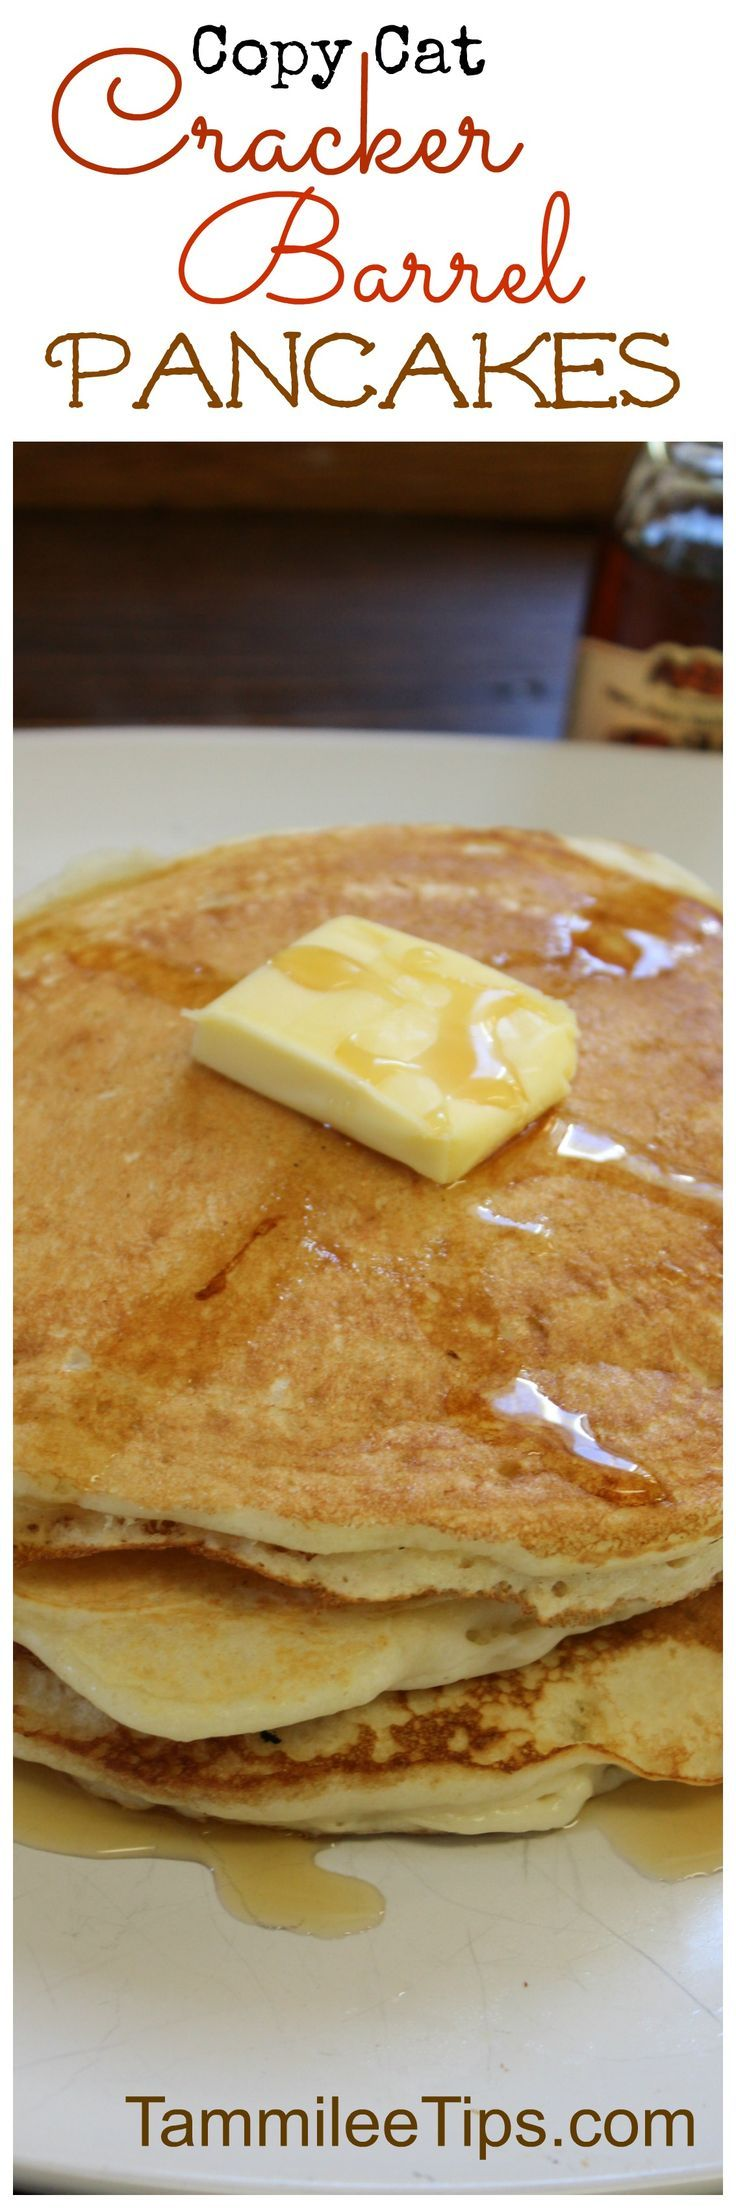 Make your favorite copy cat Cracker Barrel pancakes at home with this delicious recipe! This copycat breakfast is the perfect way to start a morning!